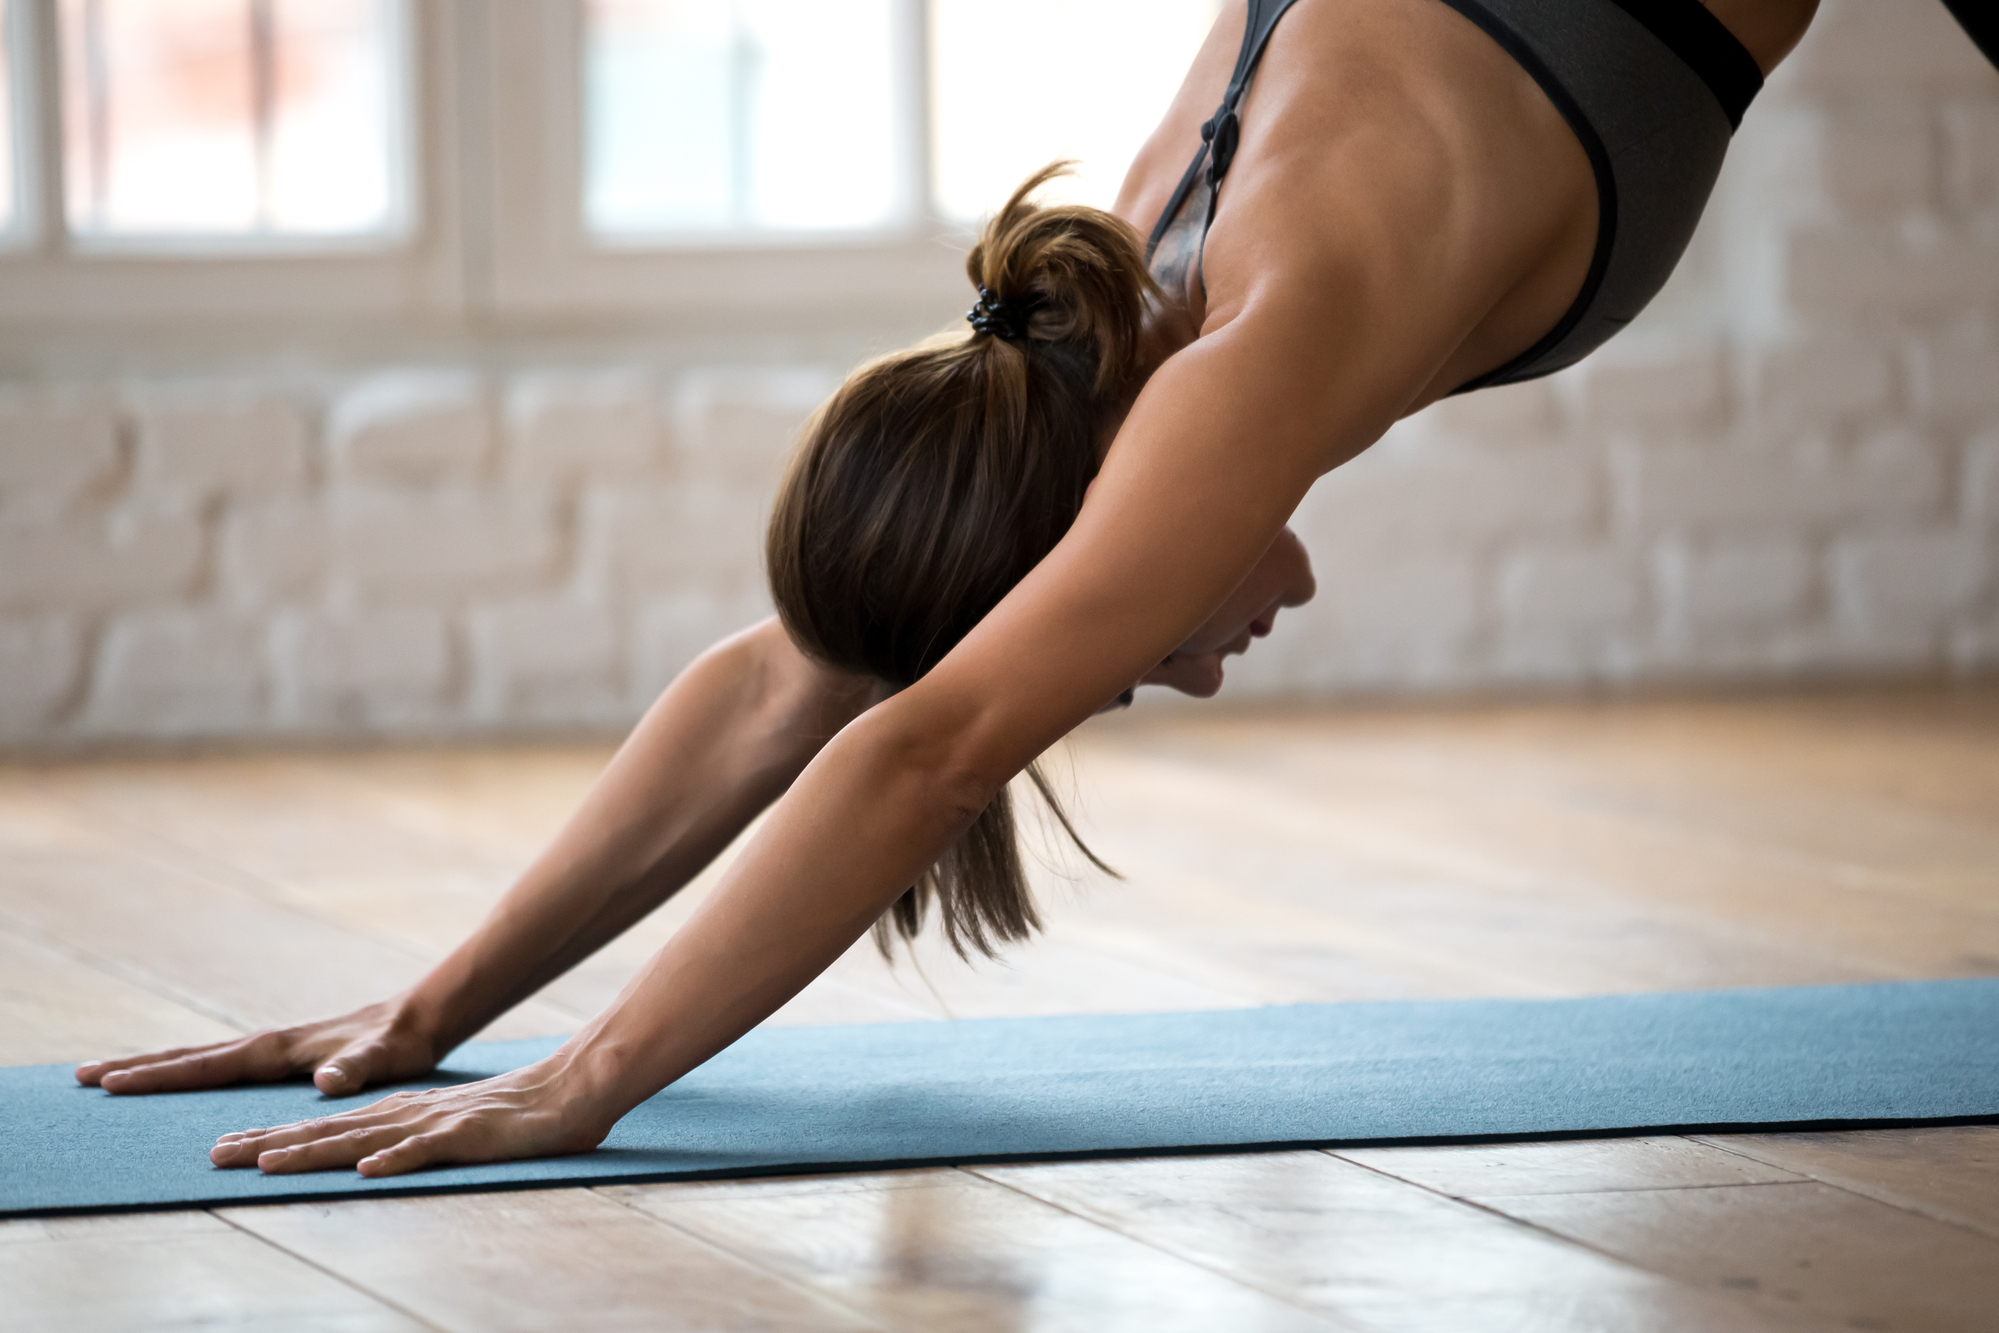 How Many Calories Does Yoga Burn